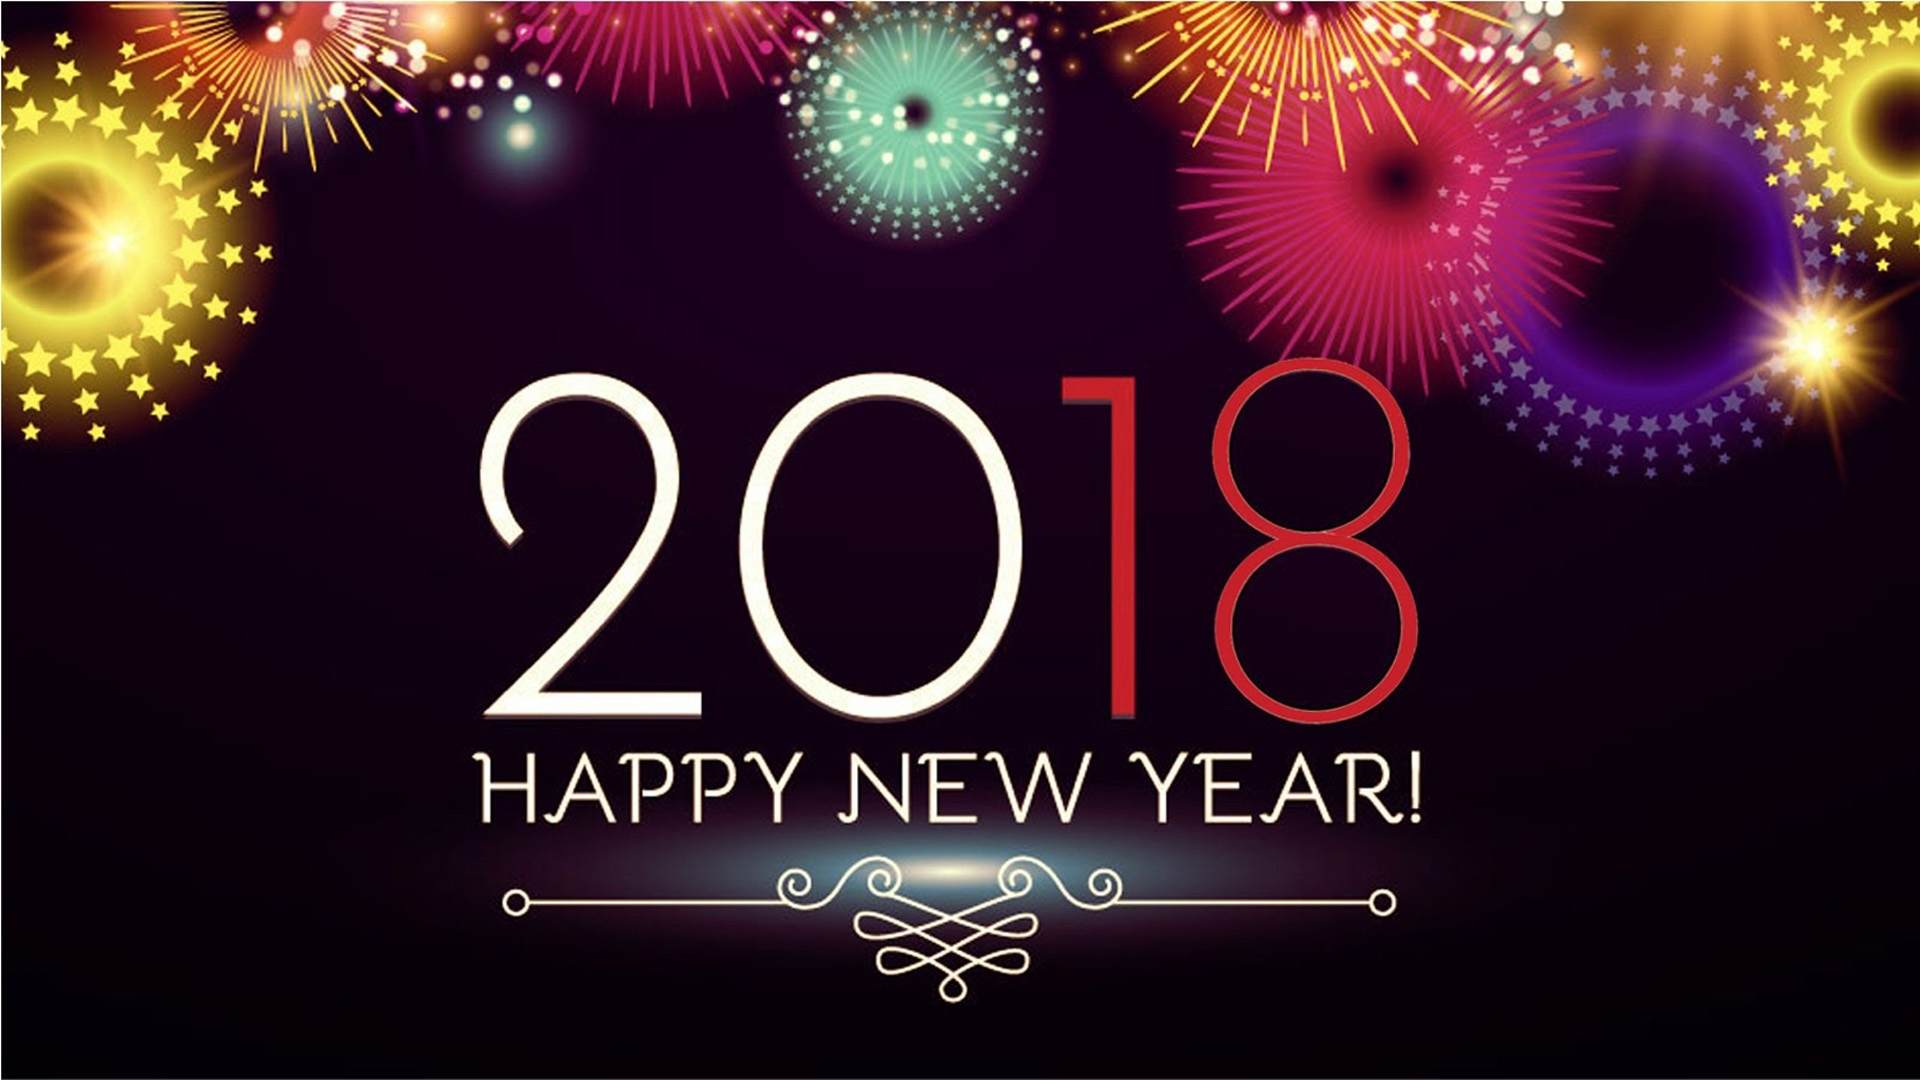 happy new year 2018 wishes greetings sms messaging with picture